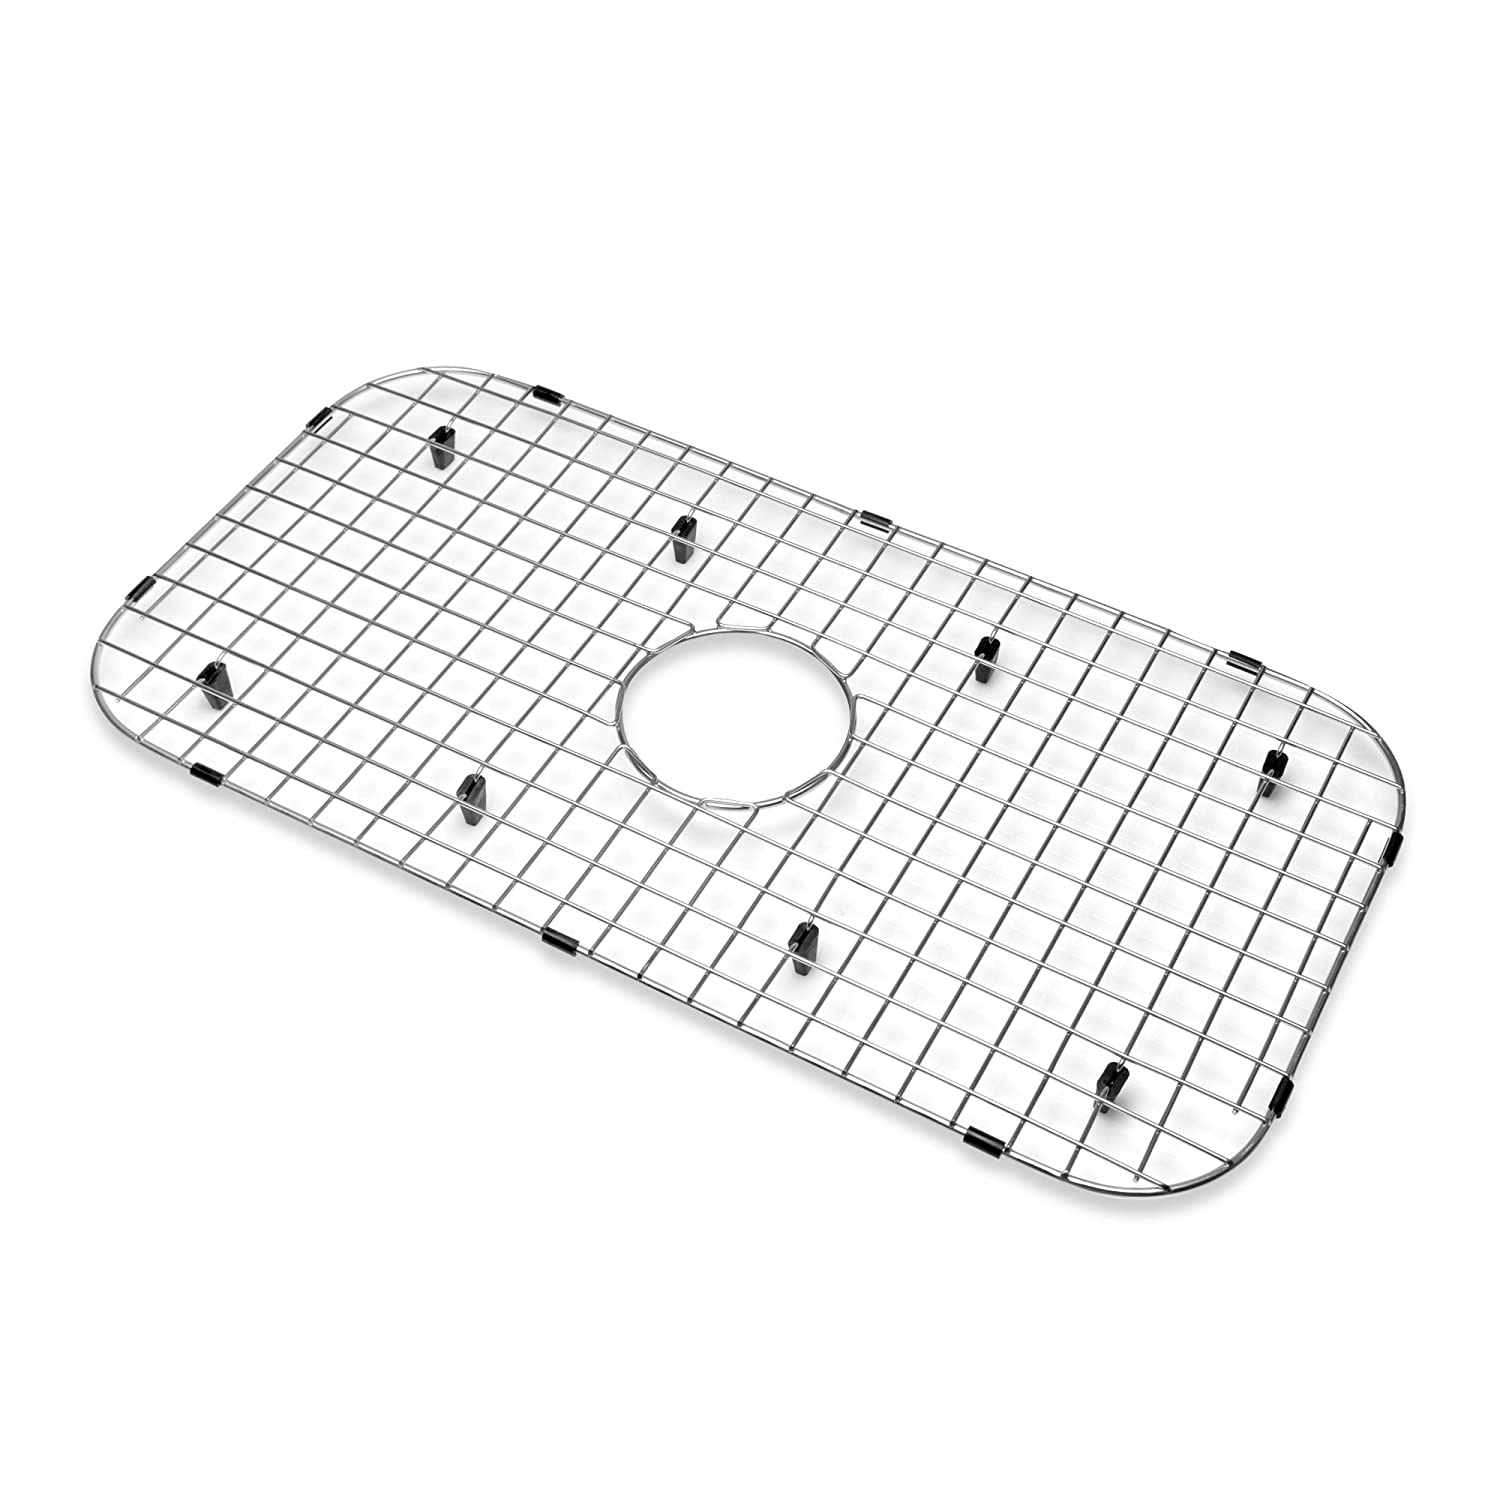 New Decor Star KBG-P05 Kitchen Sink Bottom Grid, Stainless Steel, 27 ...